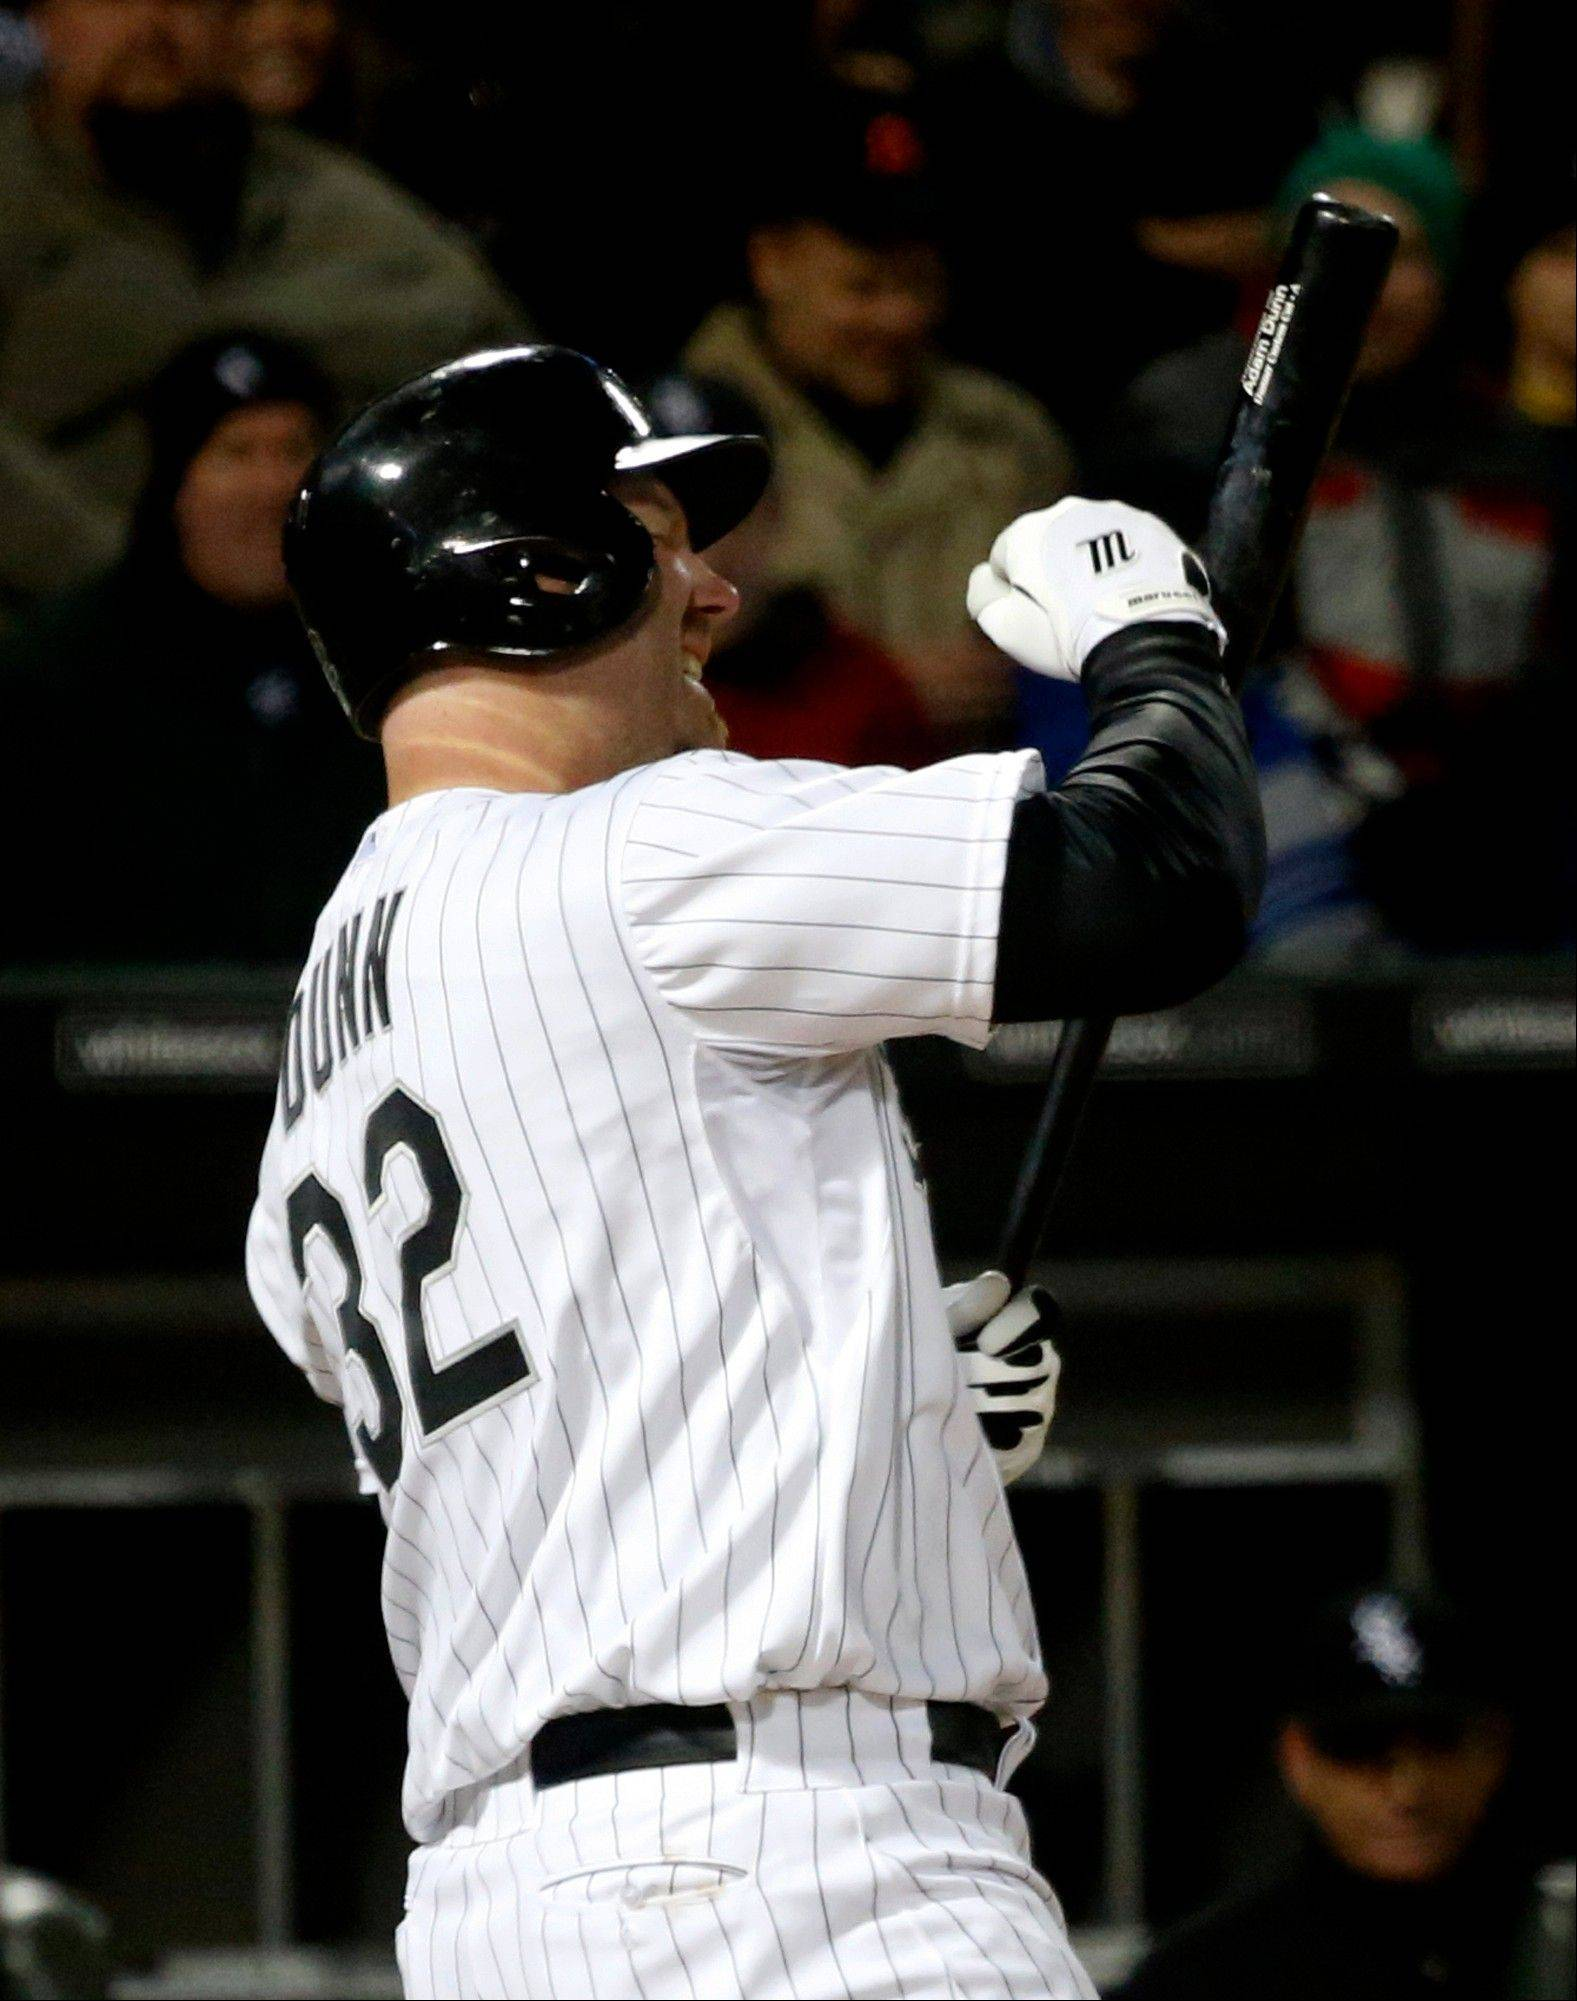 Chicago White Sox's Adam Dunn punches his bat after striking out against Seattle Mariners starting pitcher Blake Beavan during the fifth inning of a baseball game on Friday, April 5, 2013, in Chicago.